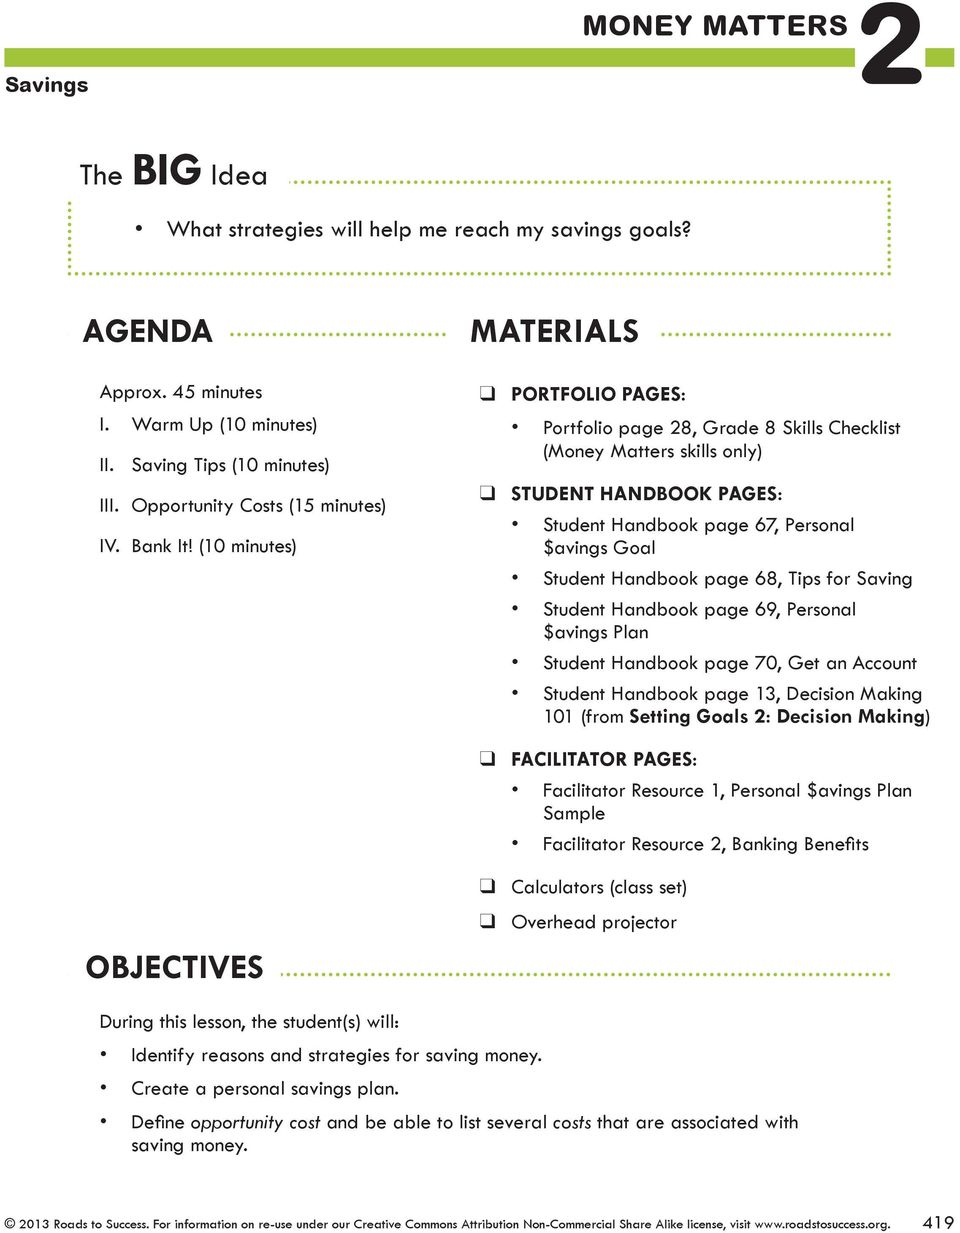 (10 minutes) MATERIALS PORTFOLIO PAGES: Portfolio page 28, Grade 8 Skills Checklist (Money Matters skills only) STUDENT HANDBOOK PAGES: Student Handbook page 67, Personal $avings Goal Student